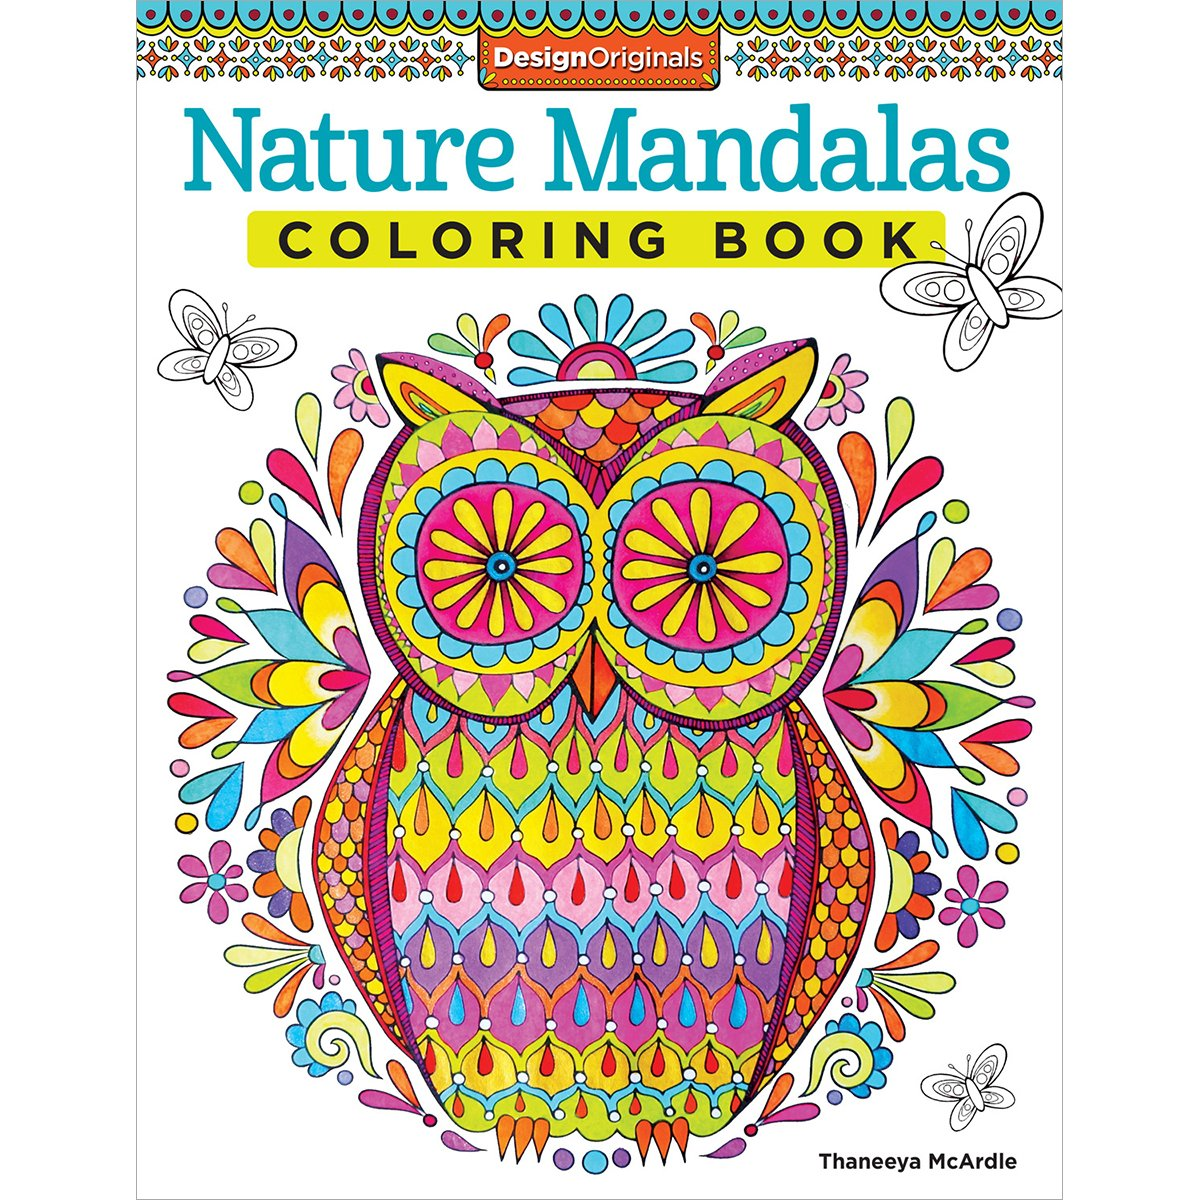 Nature Mandalas Coloring Book (Design Originals) (Inglés) Tapa blanda – 1 oct 2014 Thaneeya McArdle 157421957X FOX-5492 Novelty & Activity Books